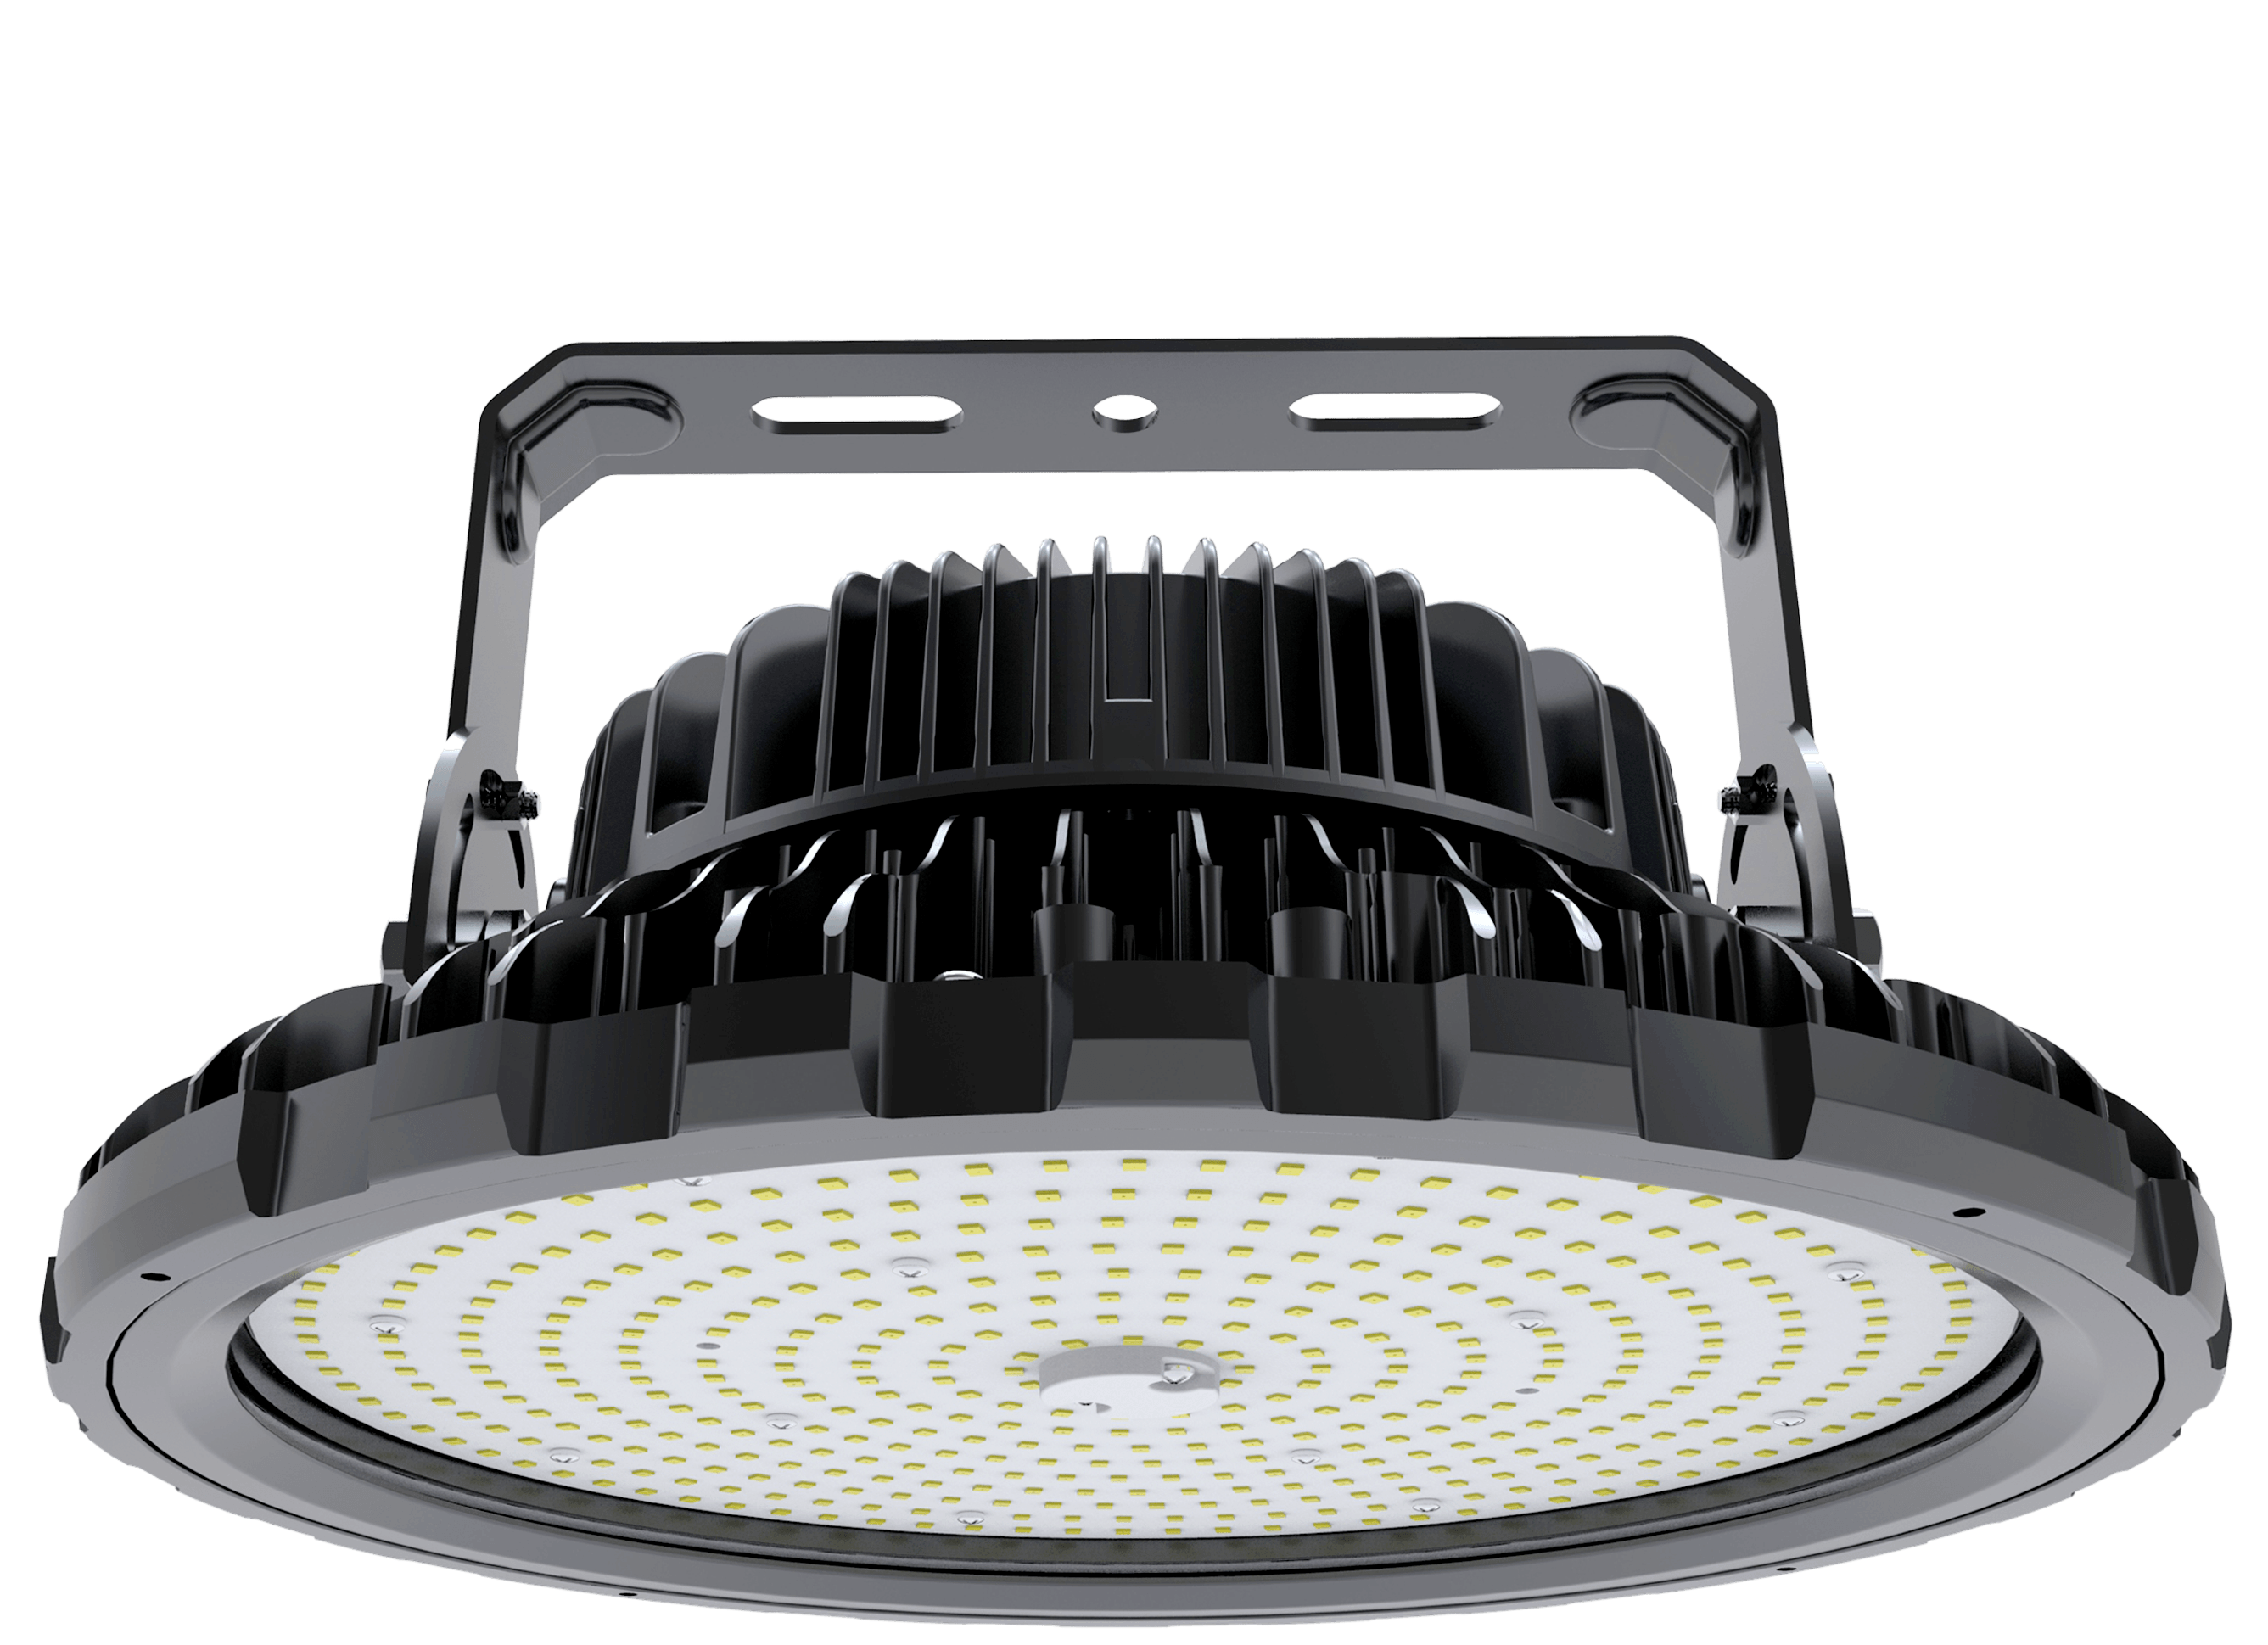 UFO LED HighBay Light 240W 135Lmw, IP65 Waterproof